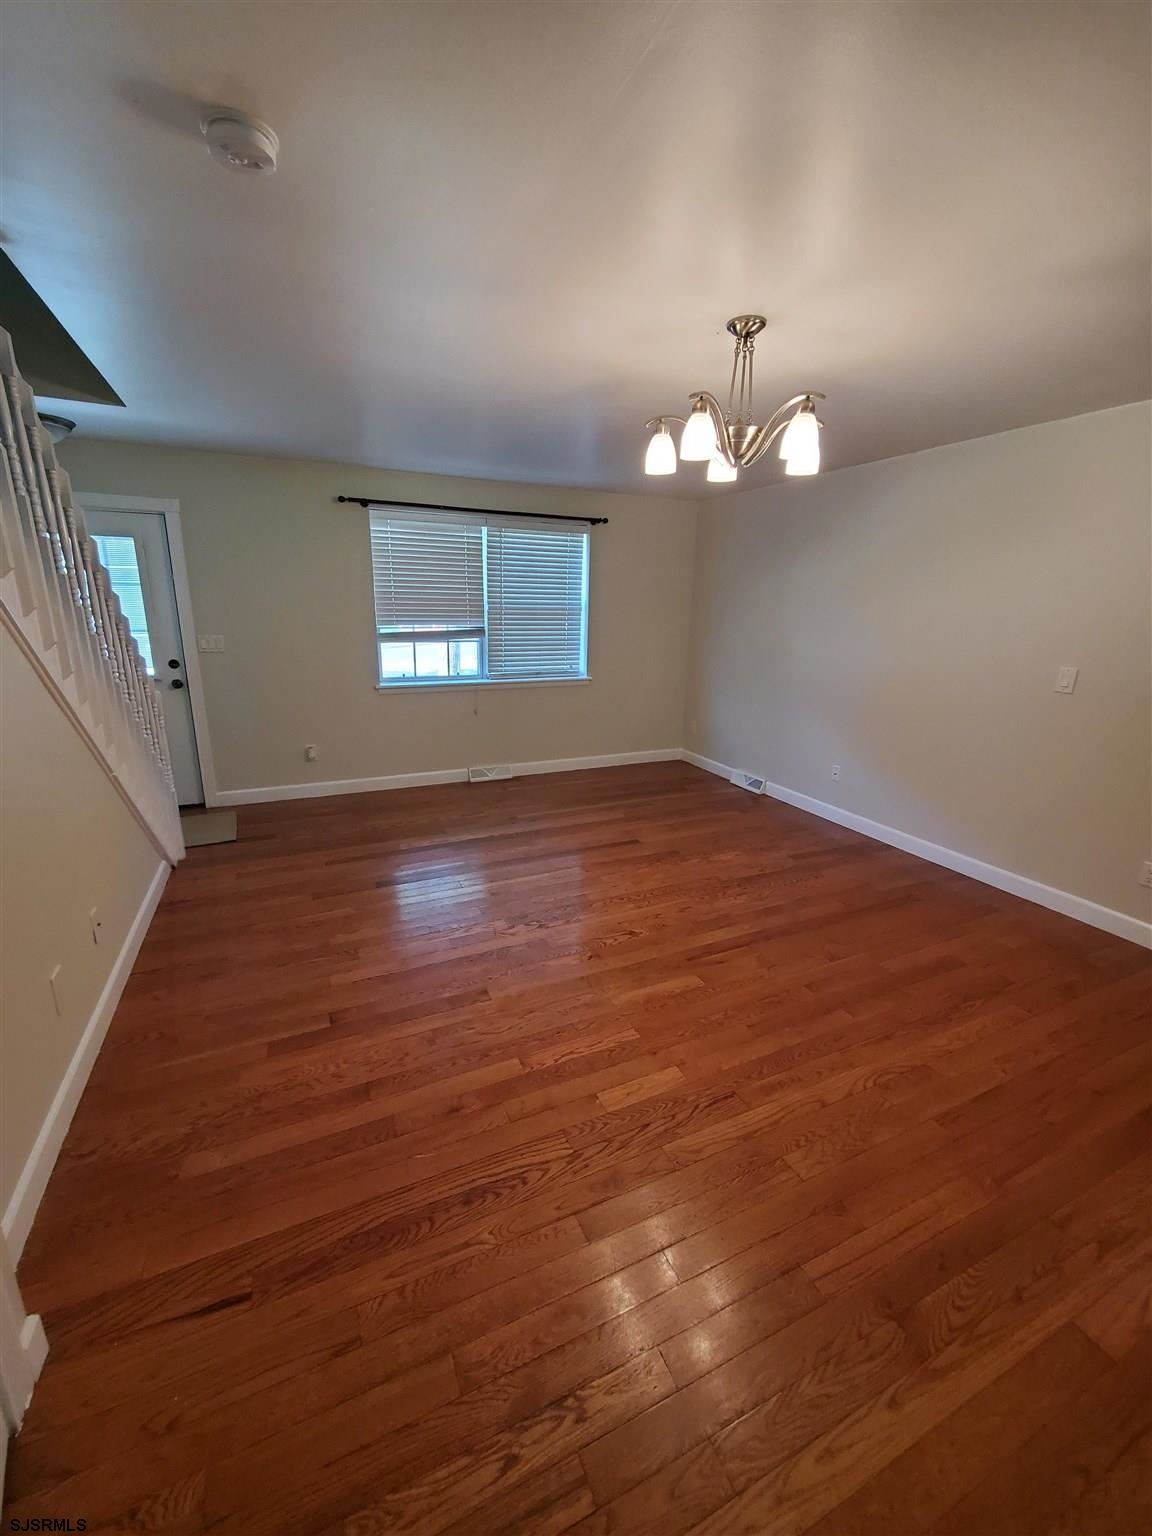 3A Oyster Bay Rd Road, Absecon, NJ 08201 - #: 555897